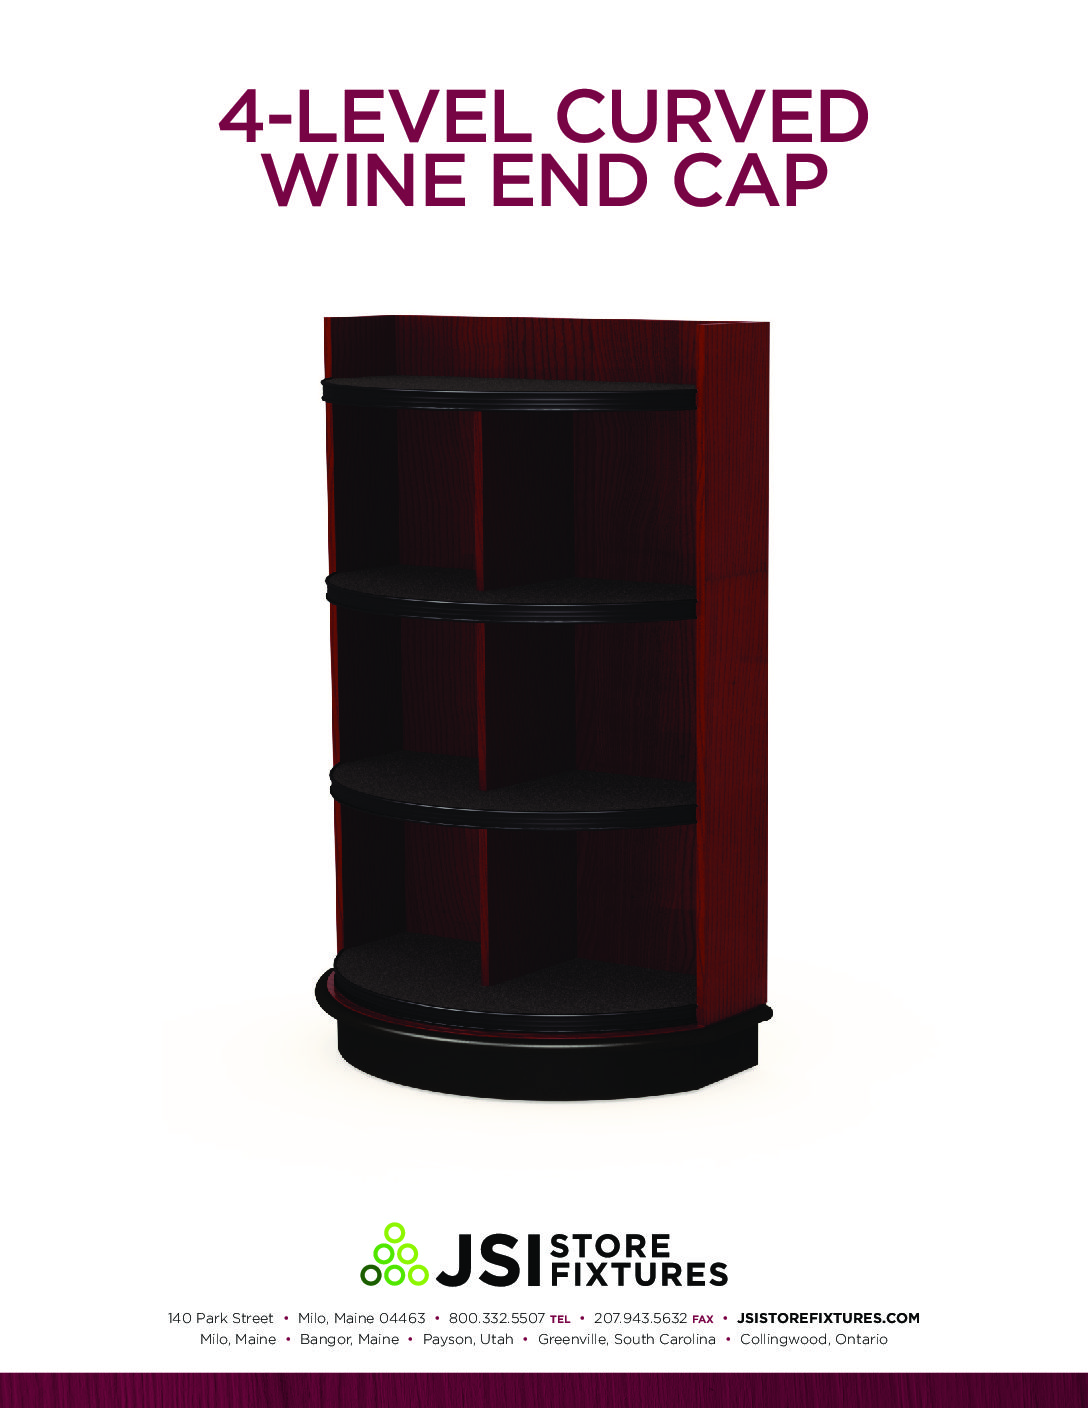 4-Level Curved Wine End Cap Spec Sheet